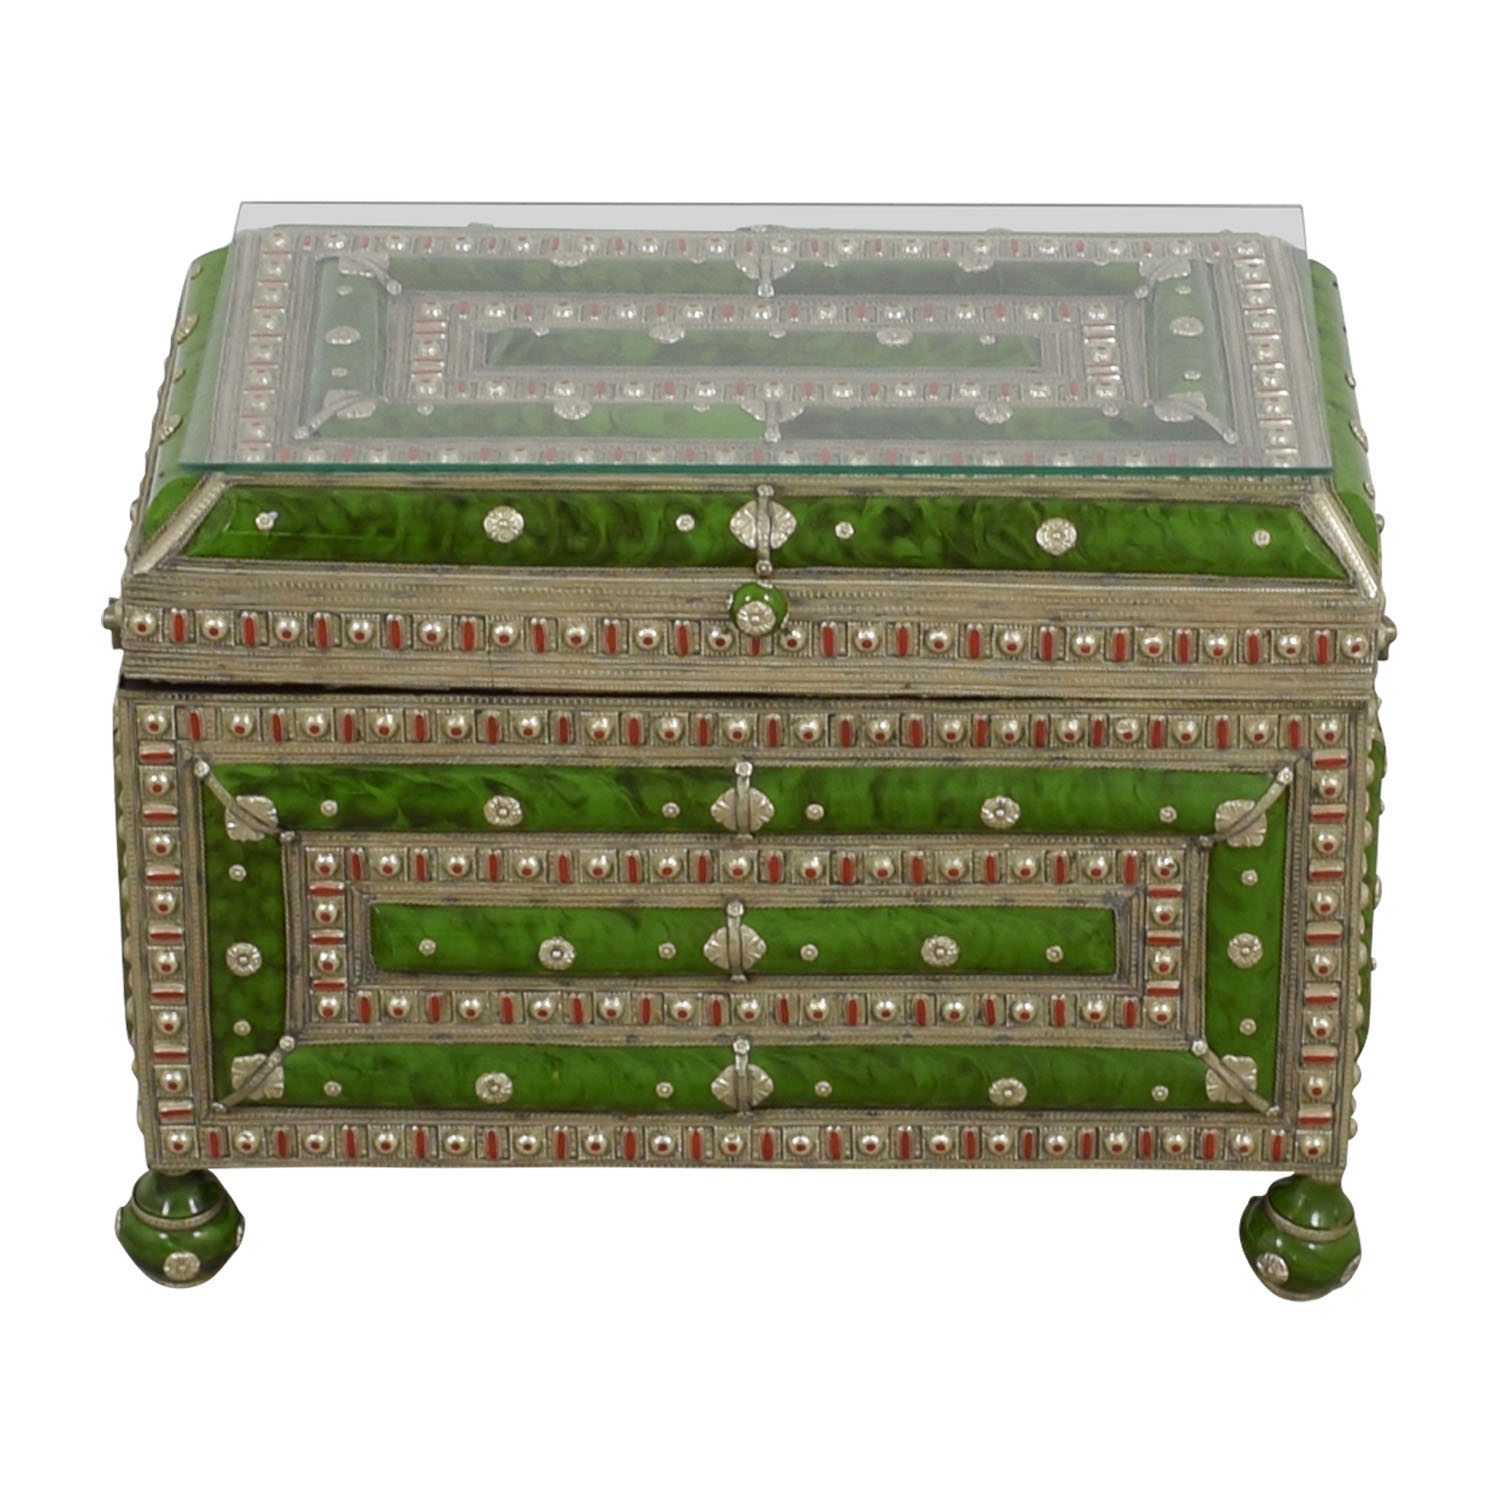 Antique Morroccan Precious Jewel Trunk and Table